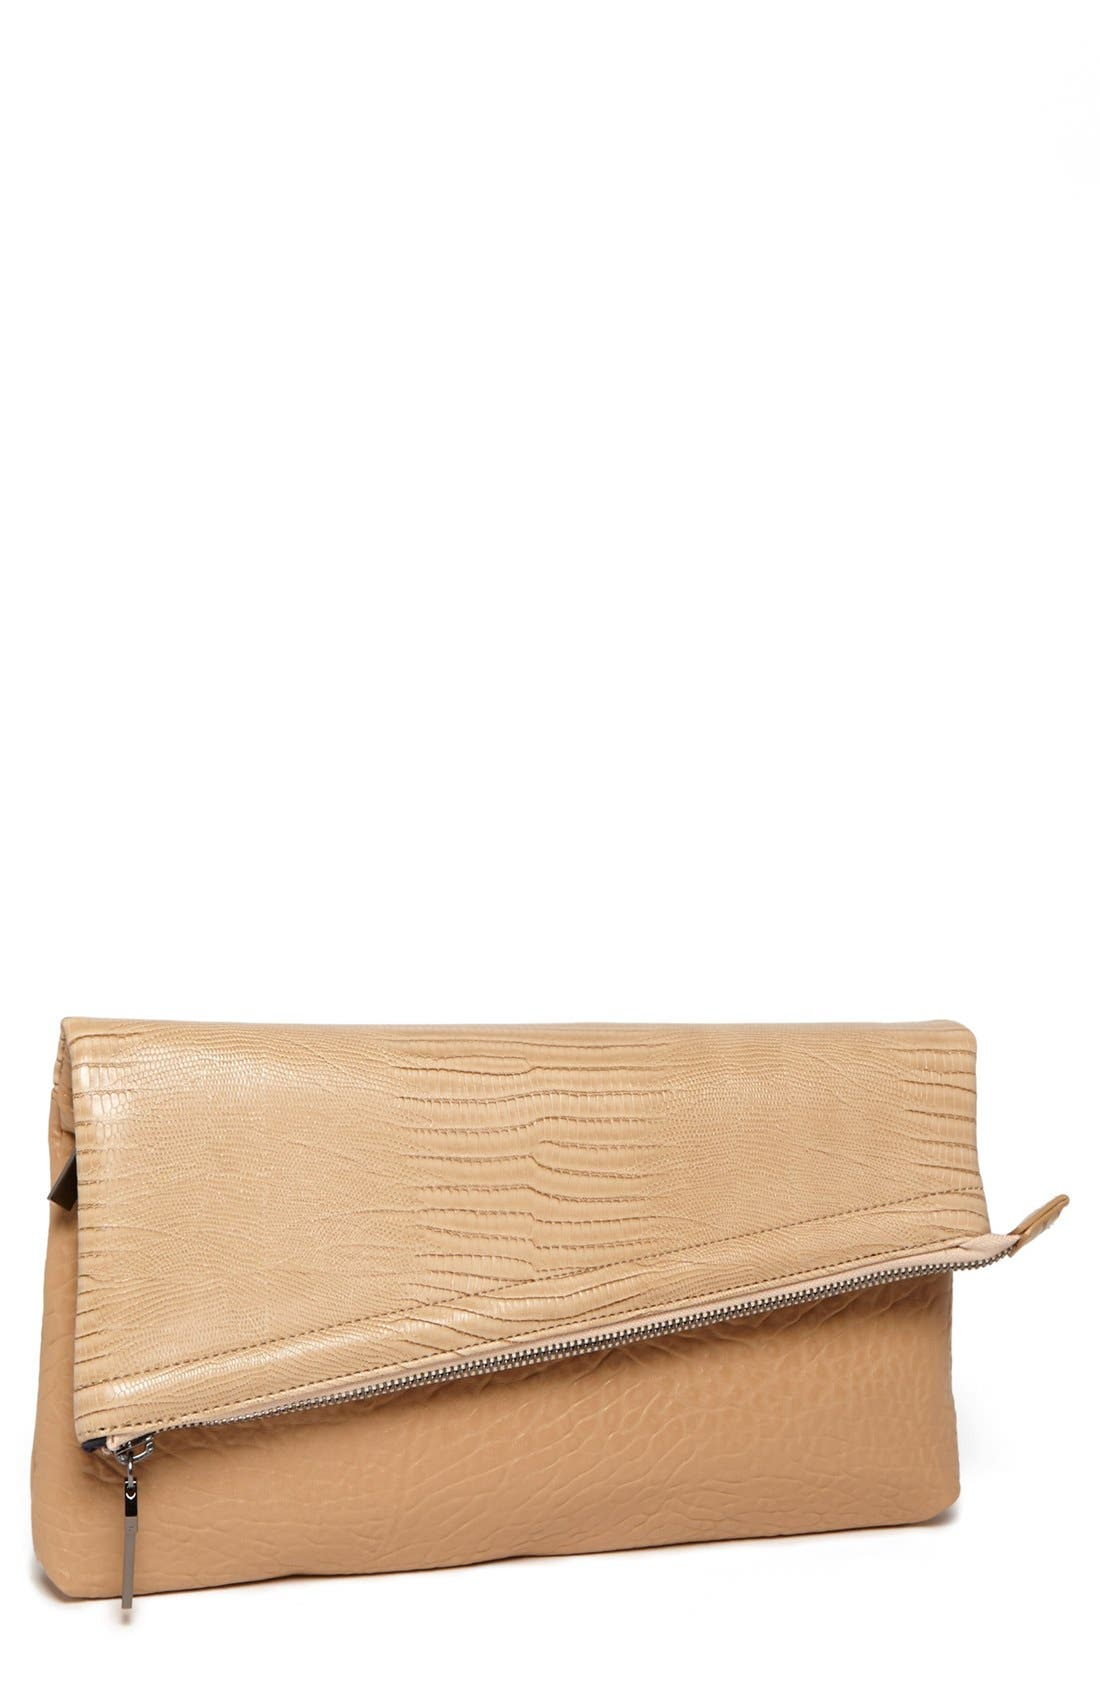 Alternate Image 1 Selected - French Connection 'Zip Code' Clutch